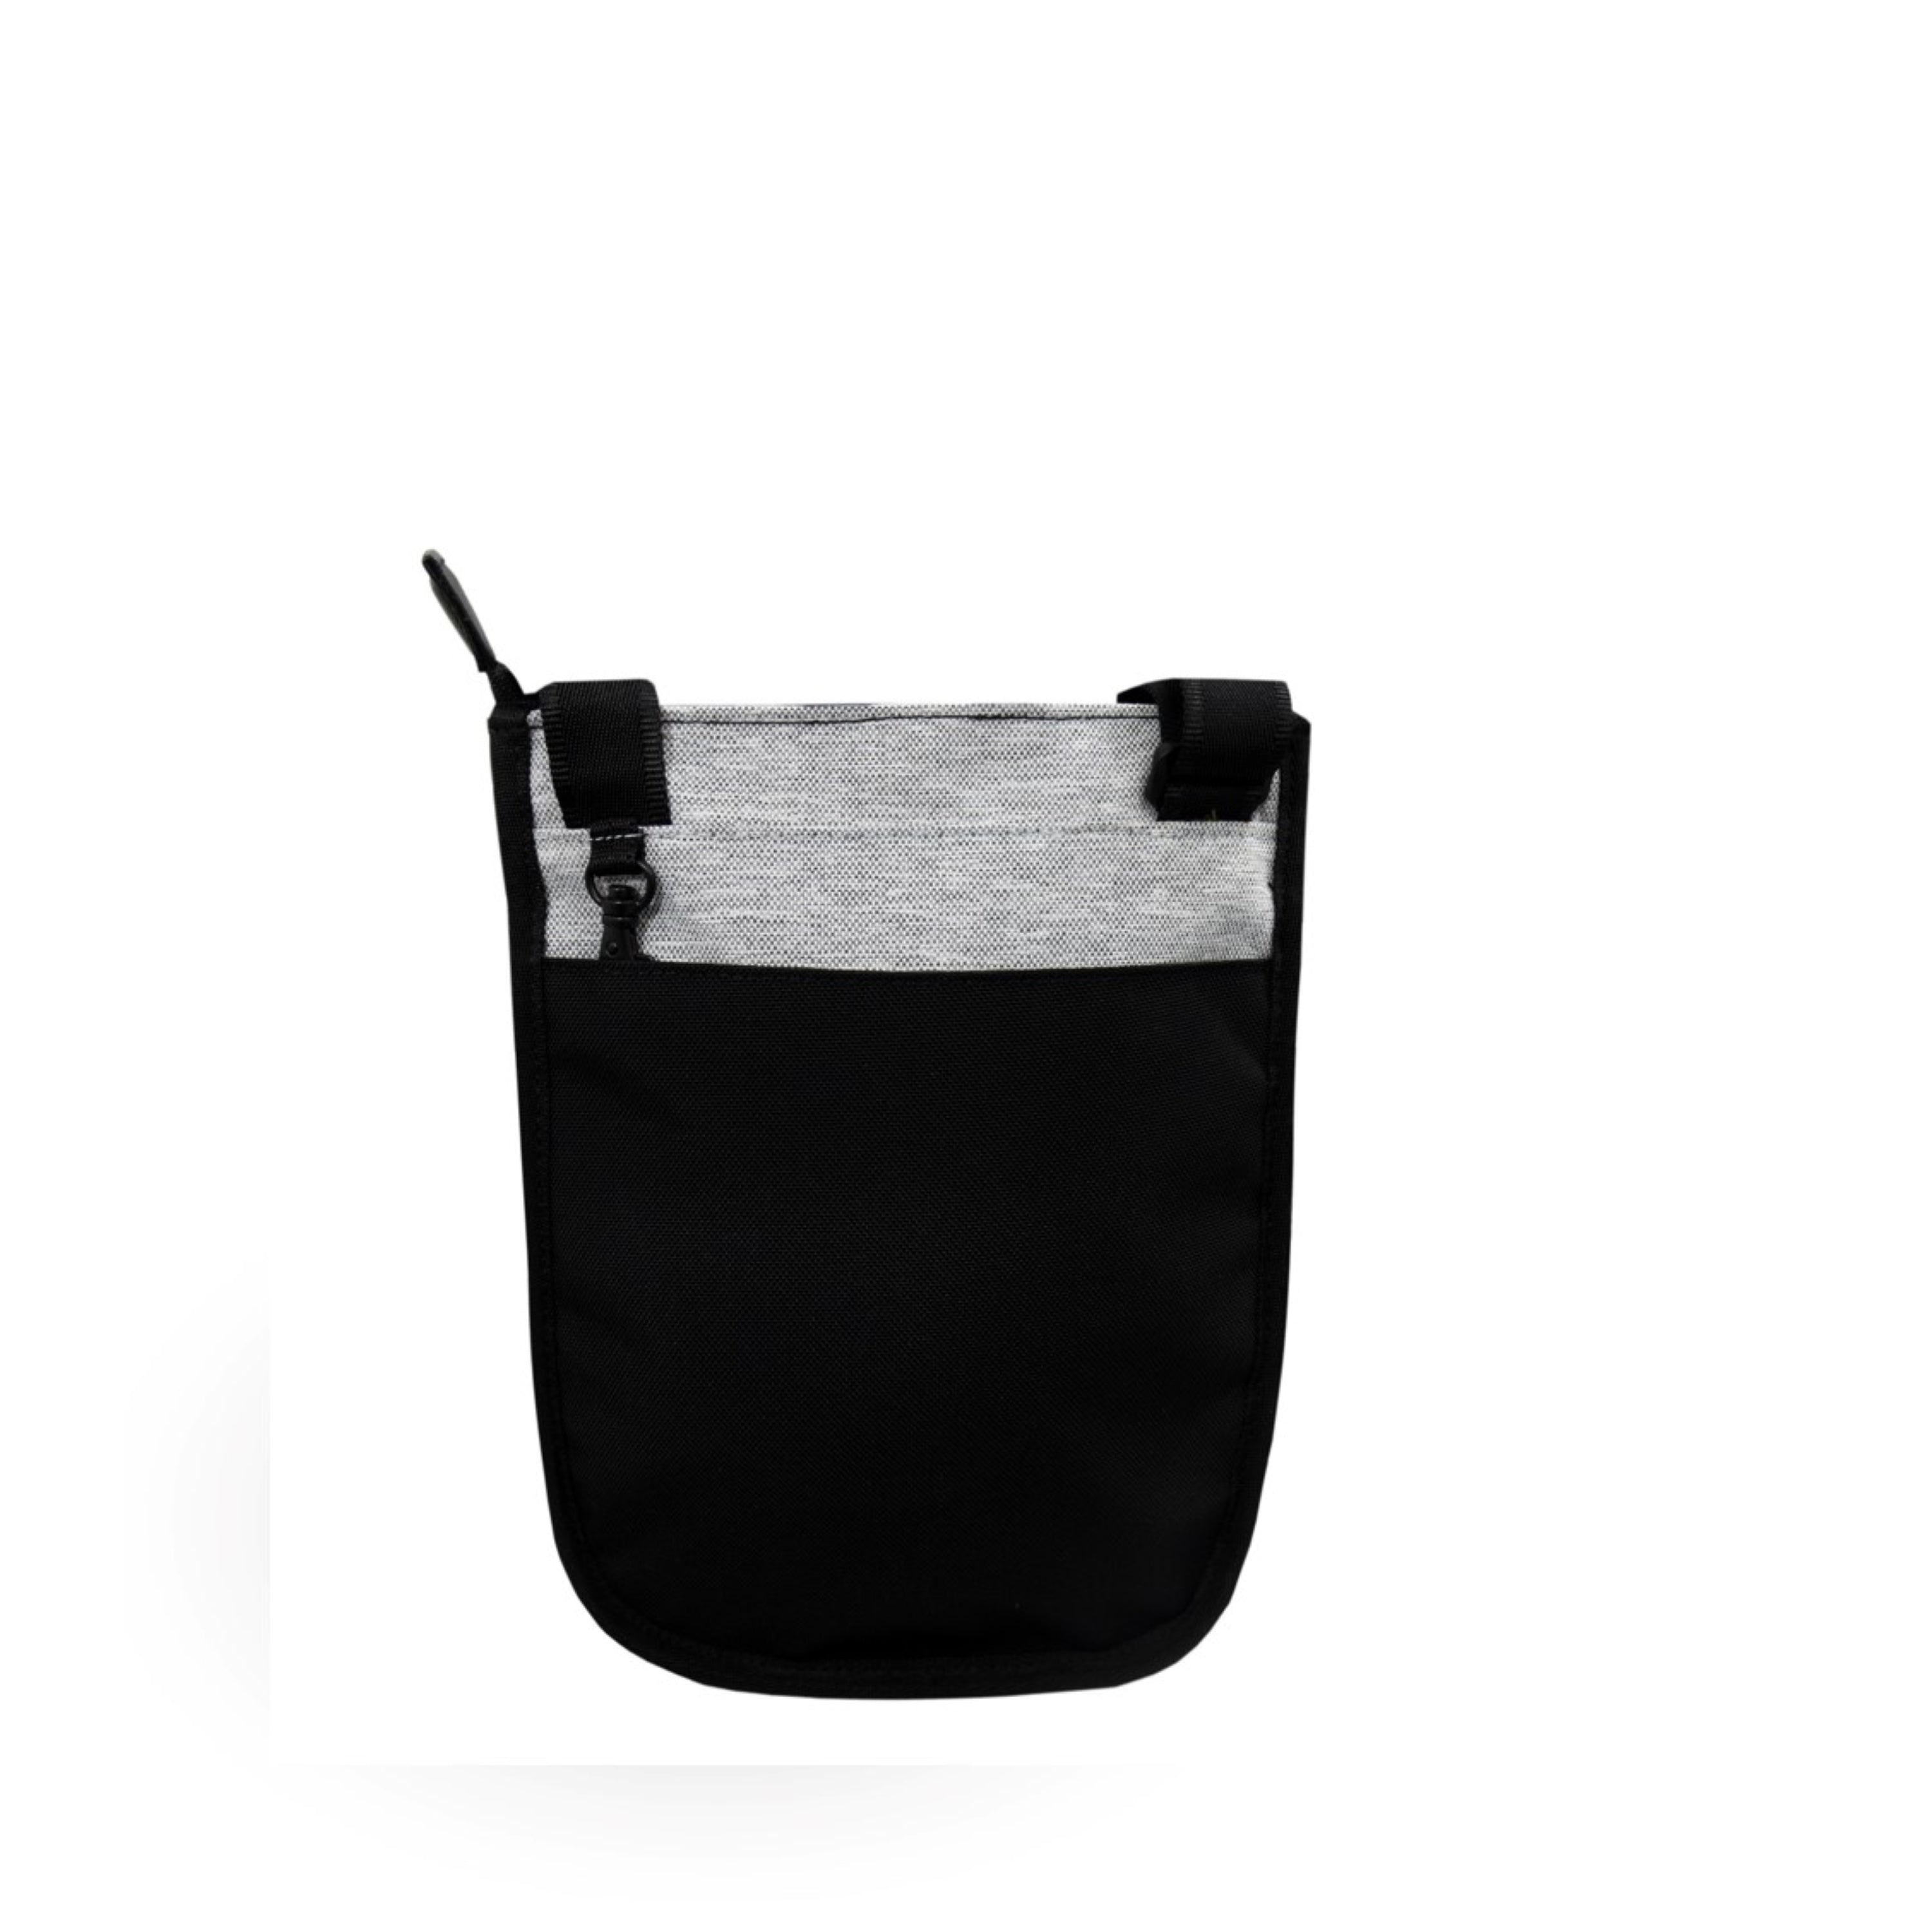 White Anti-theft Crossbody (back view) with anti-theft features